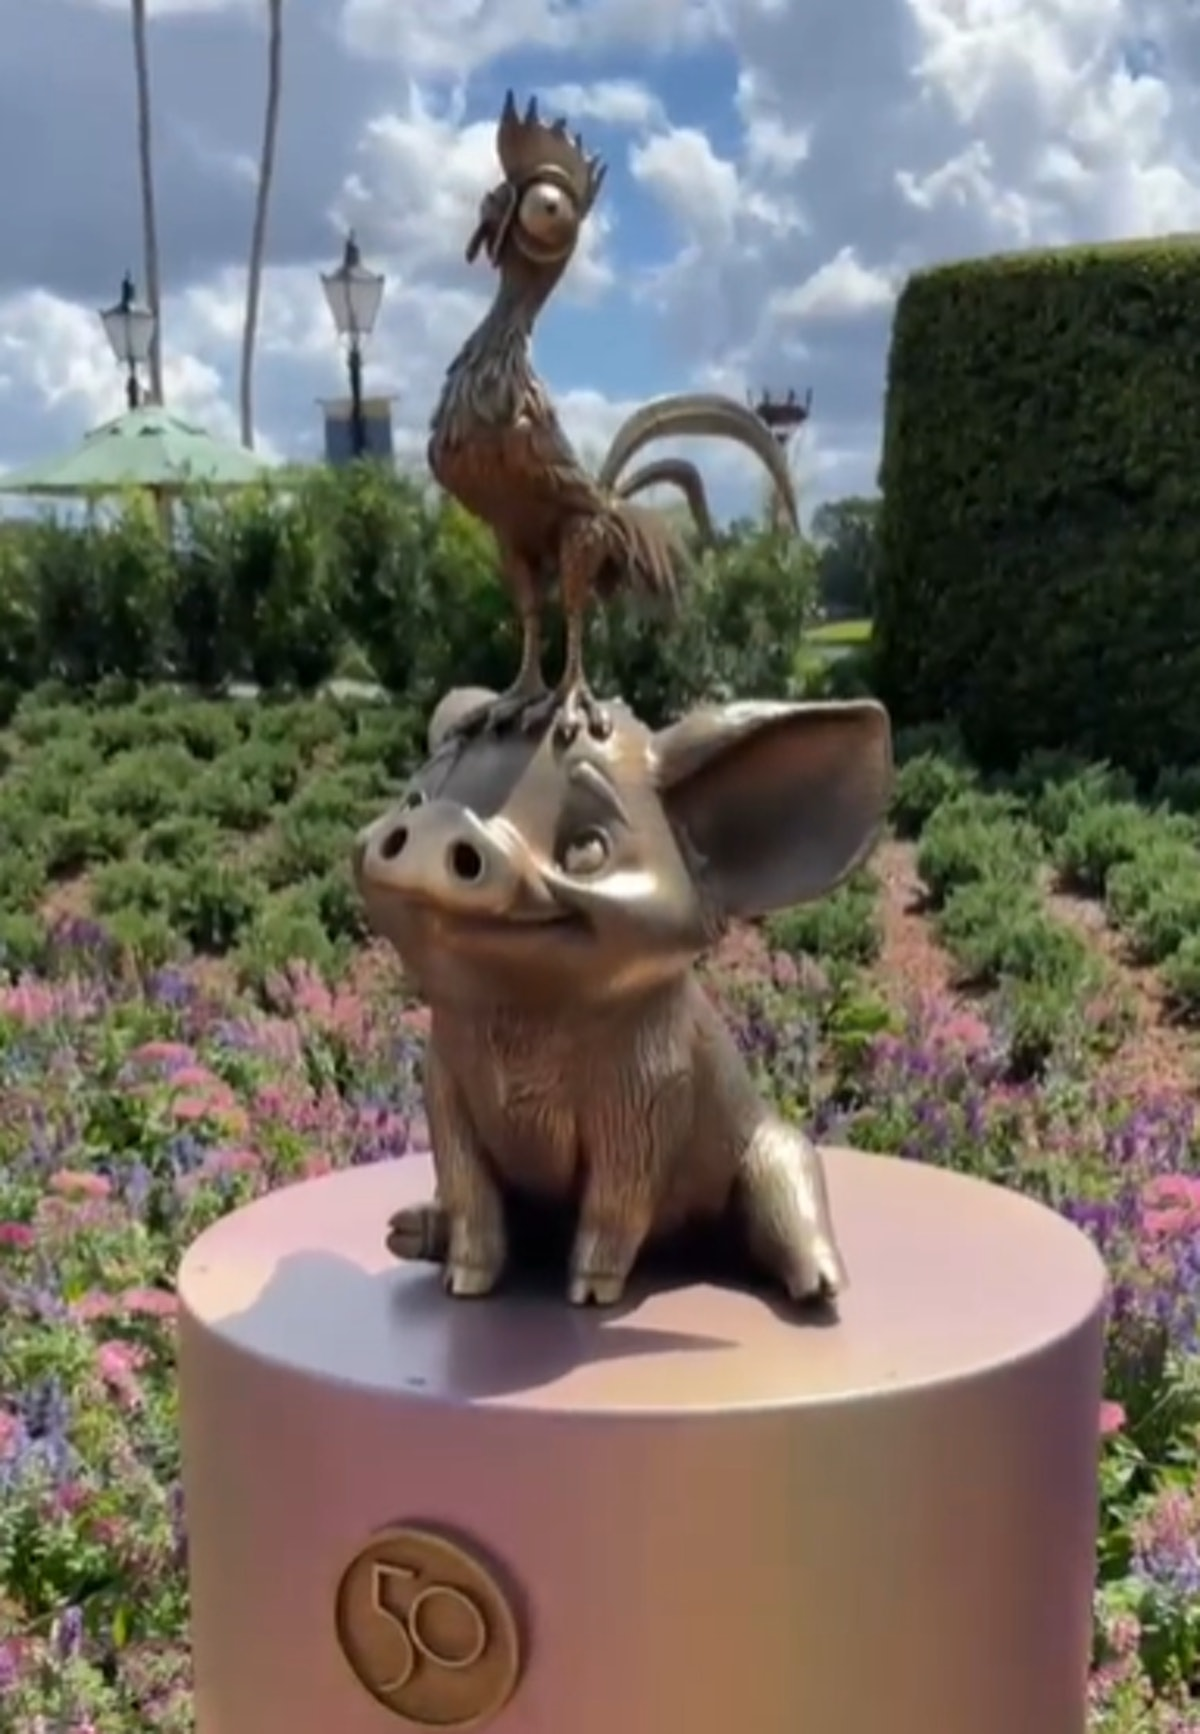 These photos of Disney's 50th anniversary gold character statues includes one of Pua from 'Moana.'